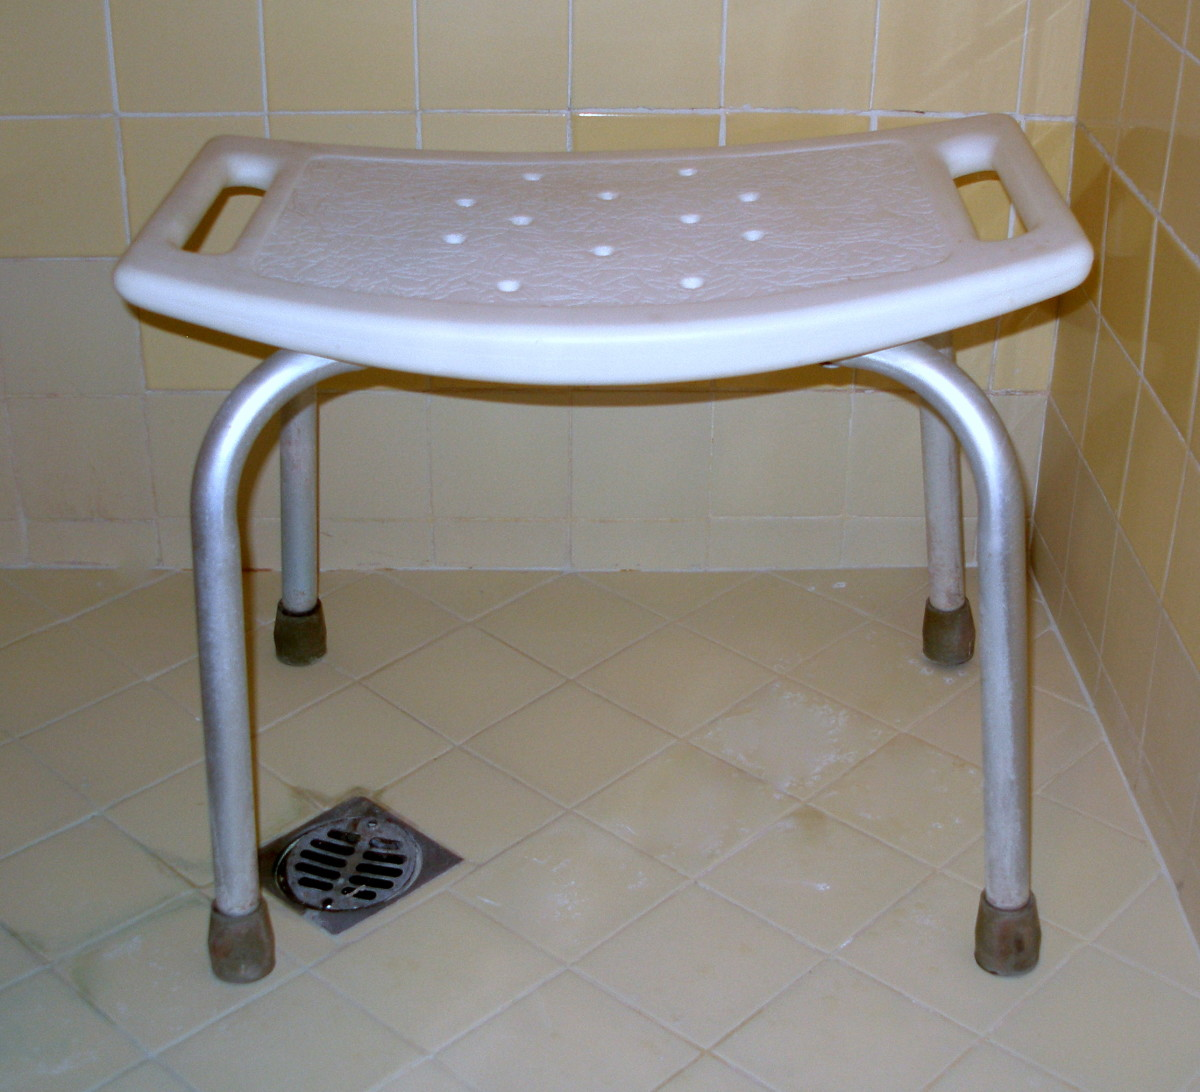 Why Consider a Shower Seat?